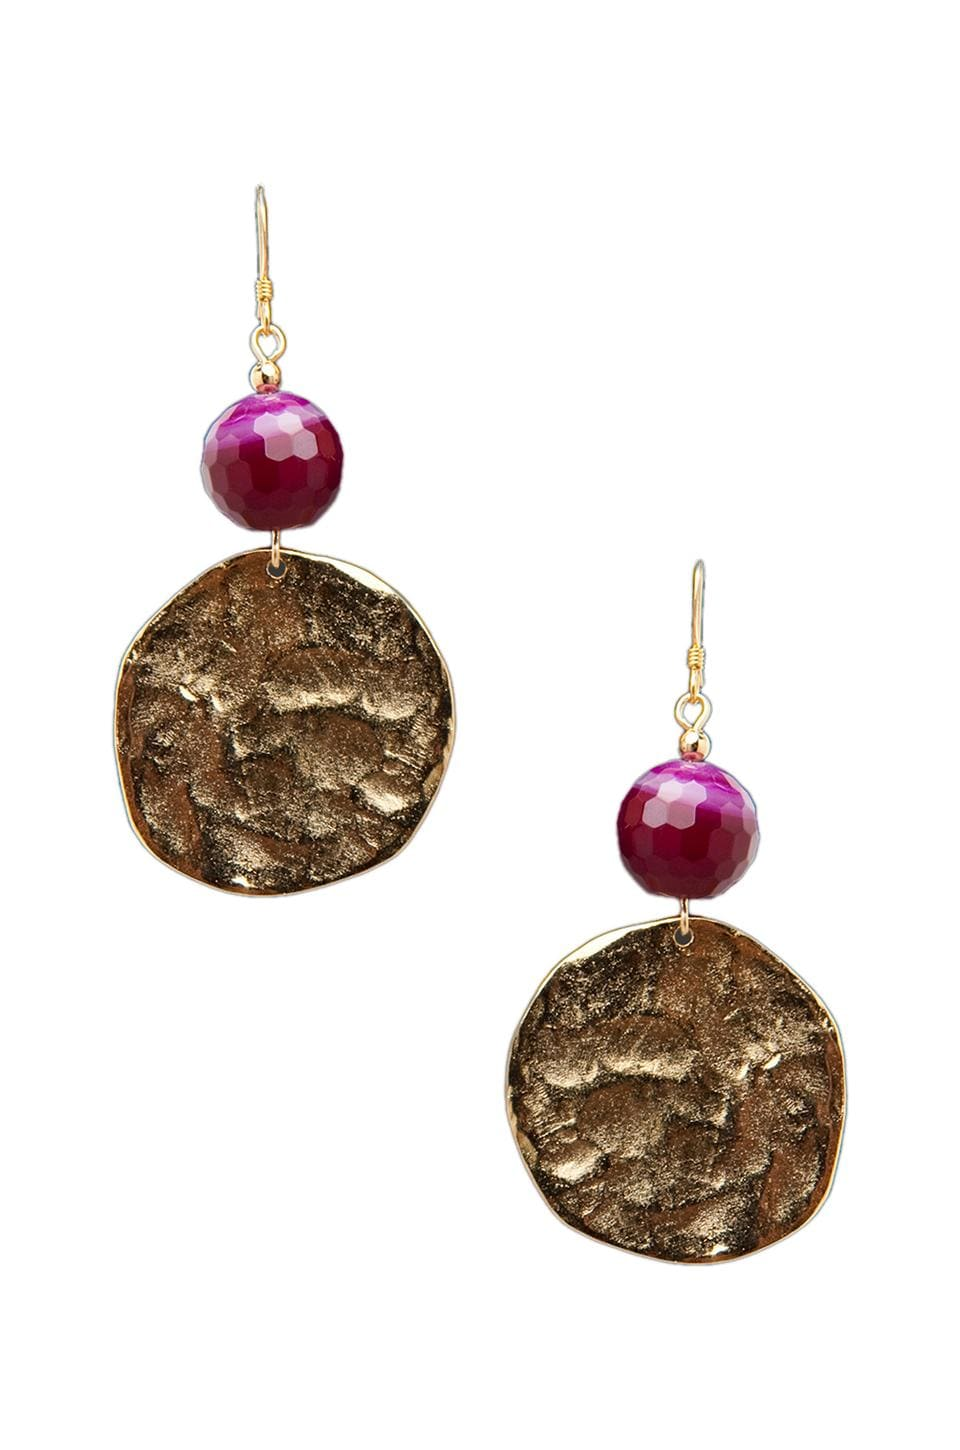 Kenneth Jay Lane Bead and Disk Earrings in Gold/Fuchsia